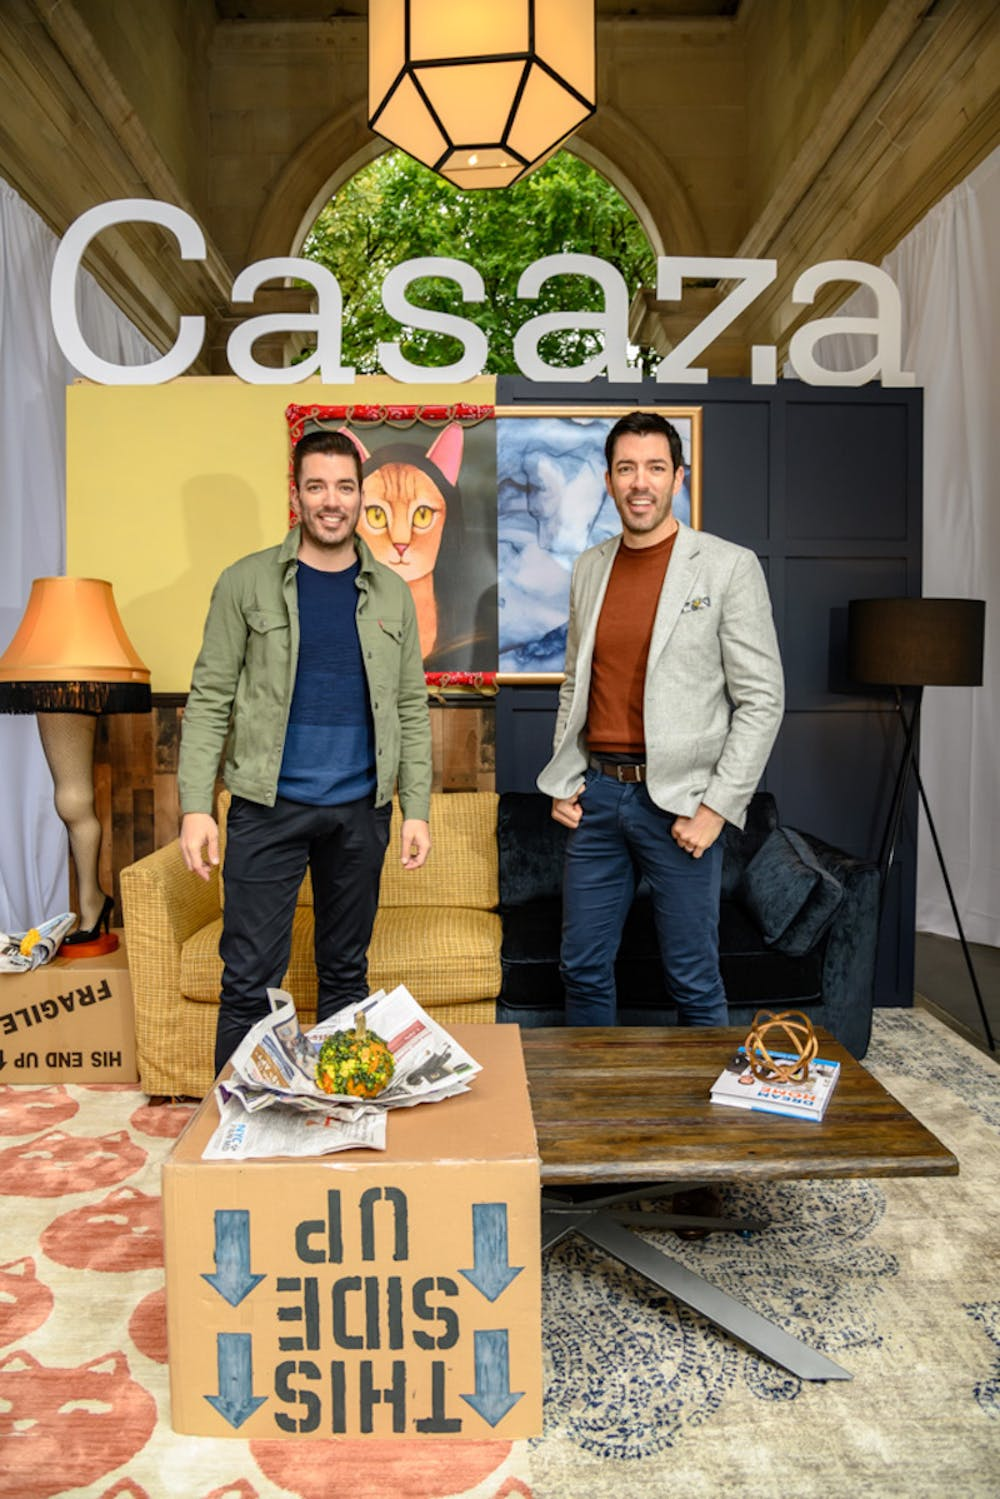 Partnership with Casaza - A great outlet to showcase our designs